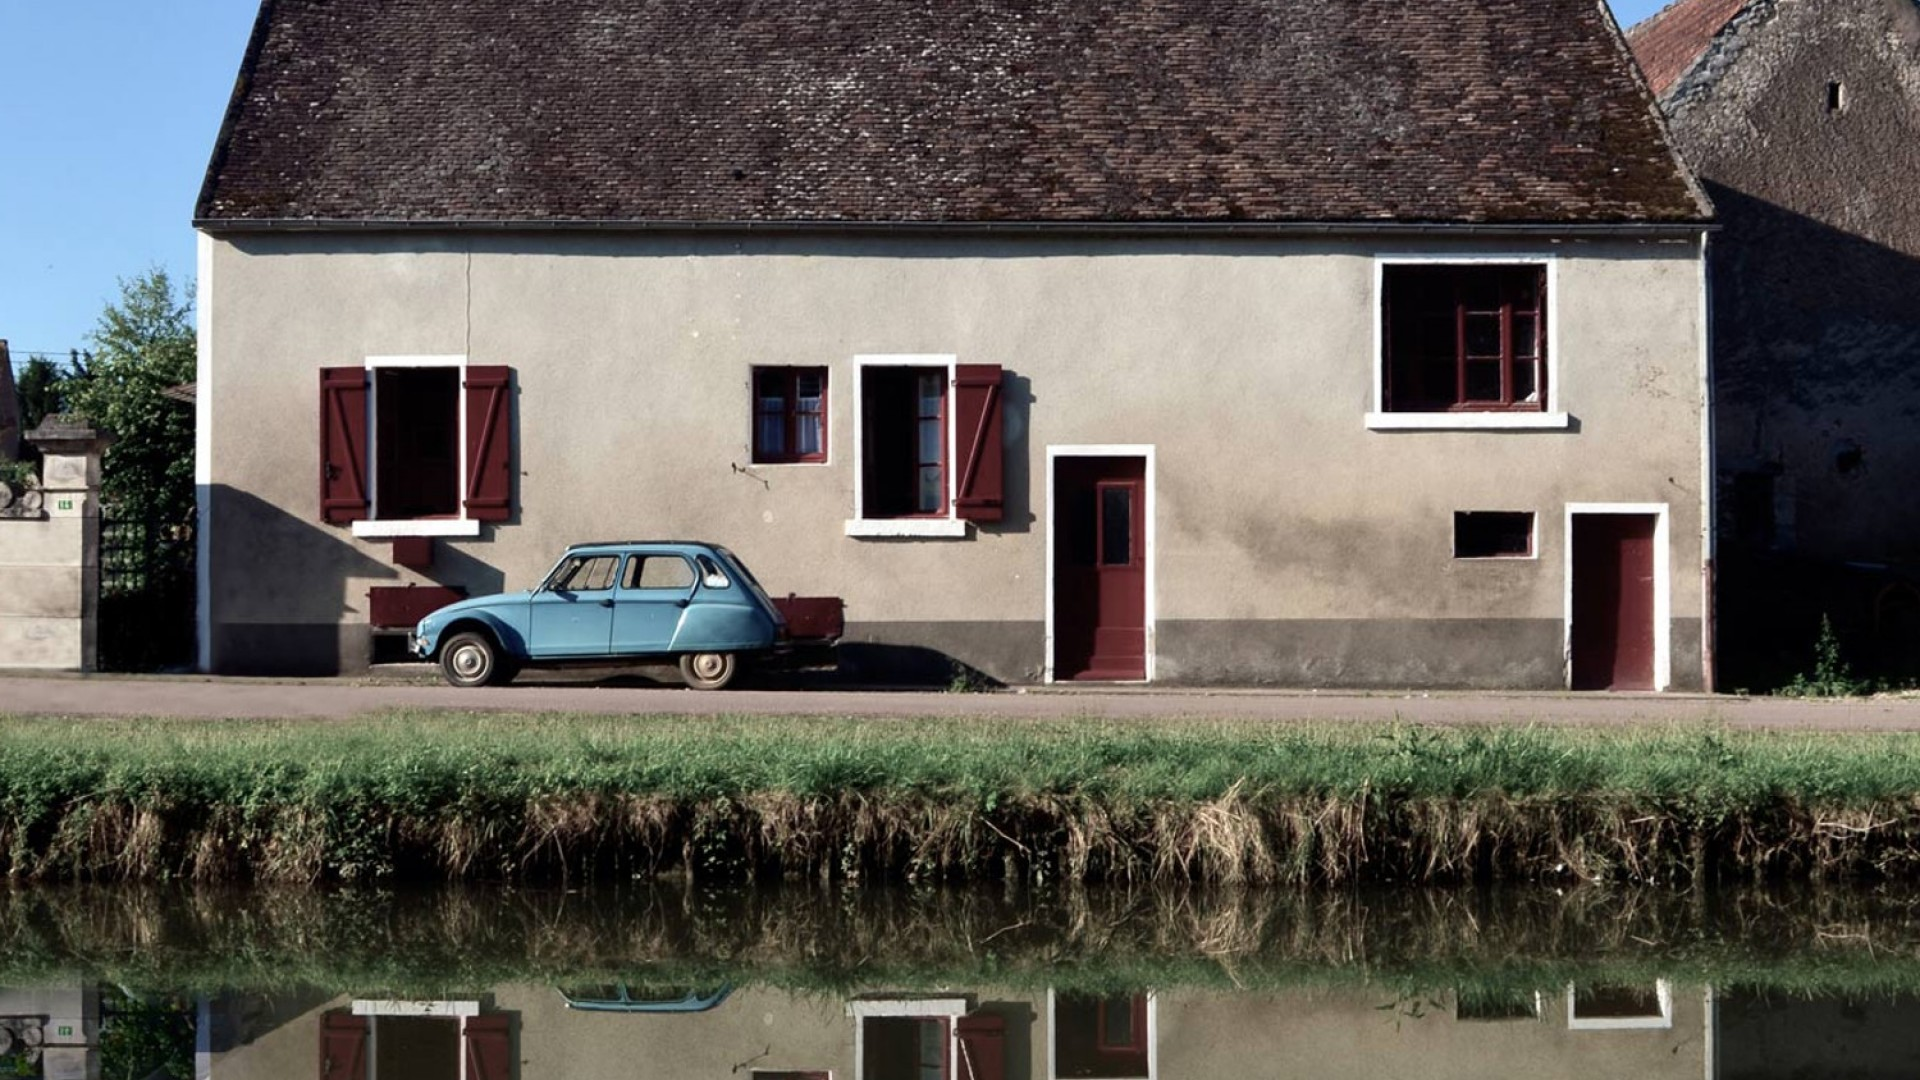 building and car in Burgandy France